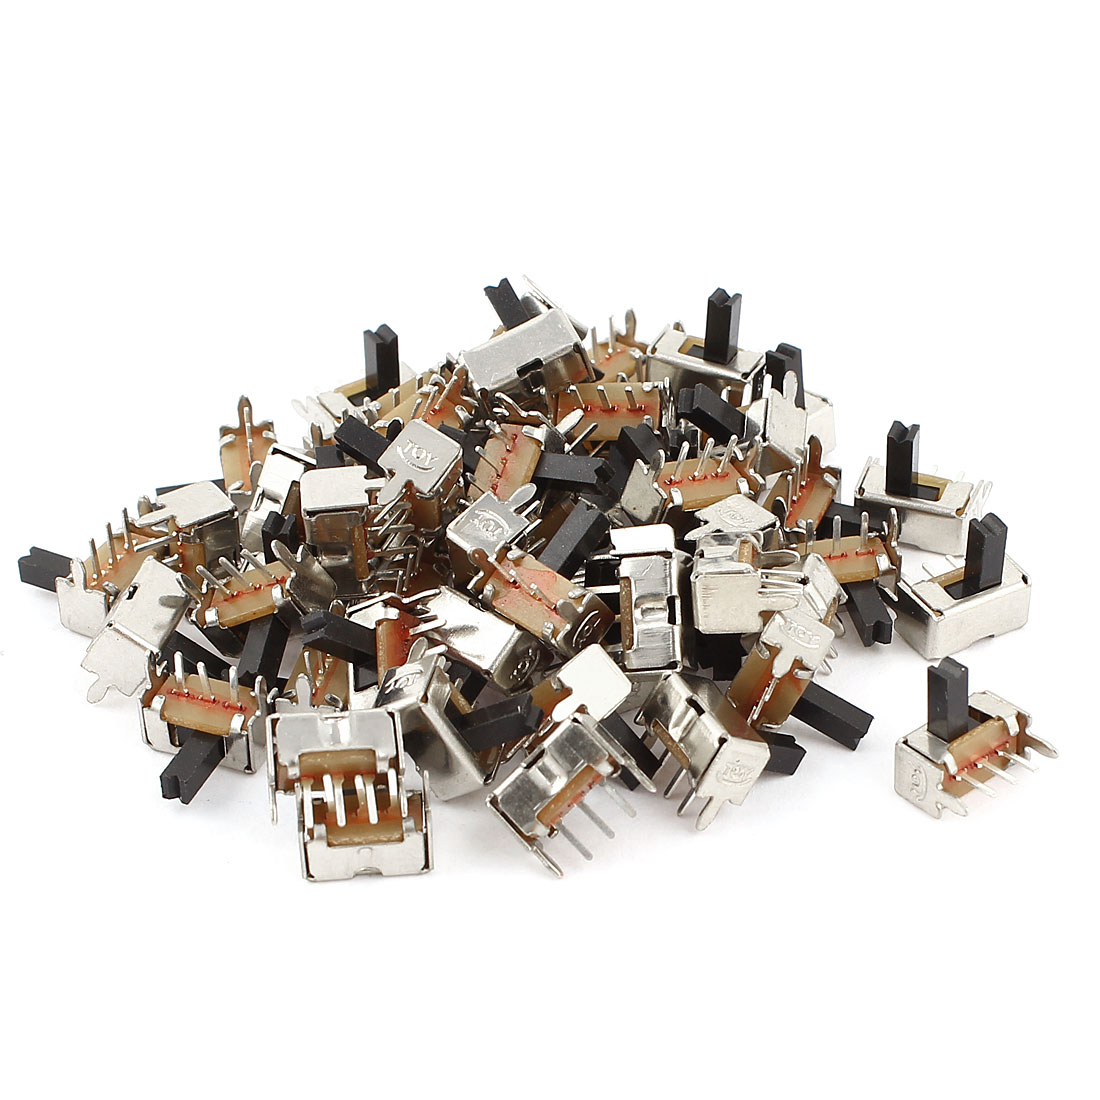 55Pcs SK12D07-VG5 2 Position 1P2T SPDT Mini Slide Switch Right Angle PCB DC 12V 0.1A